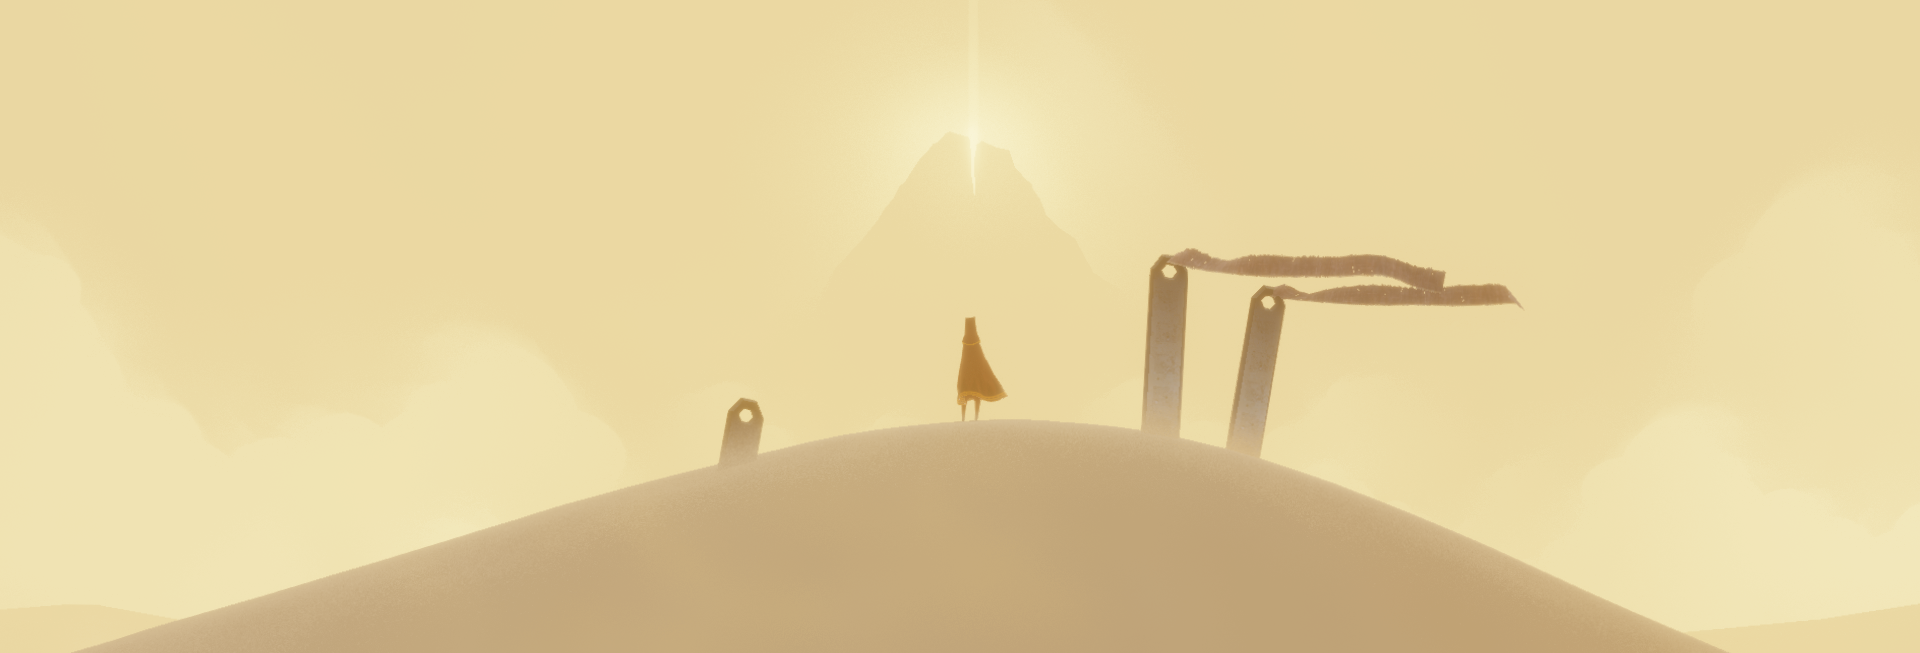 Journey_PS4_review_shots_slider